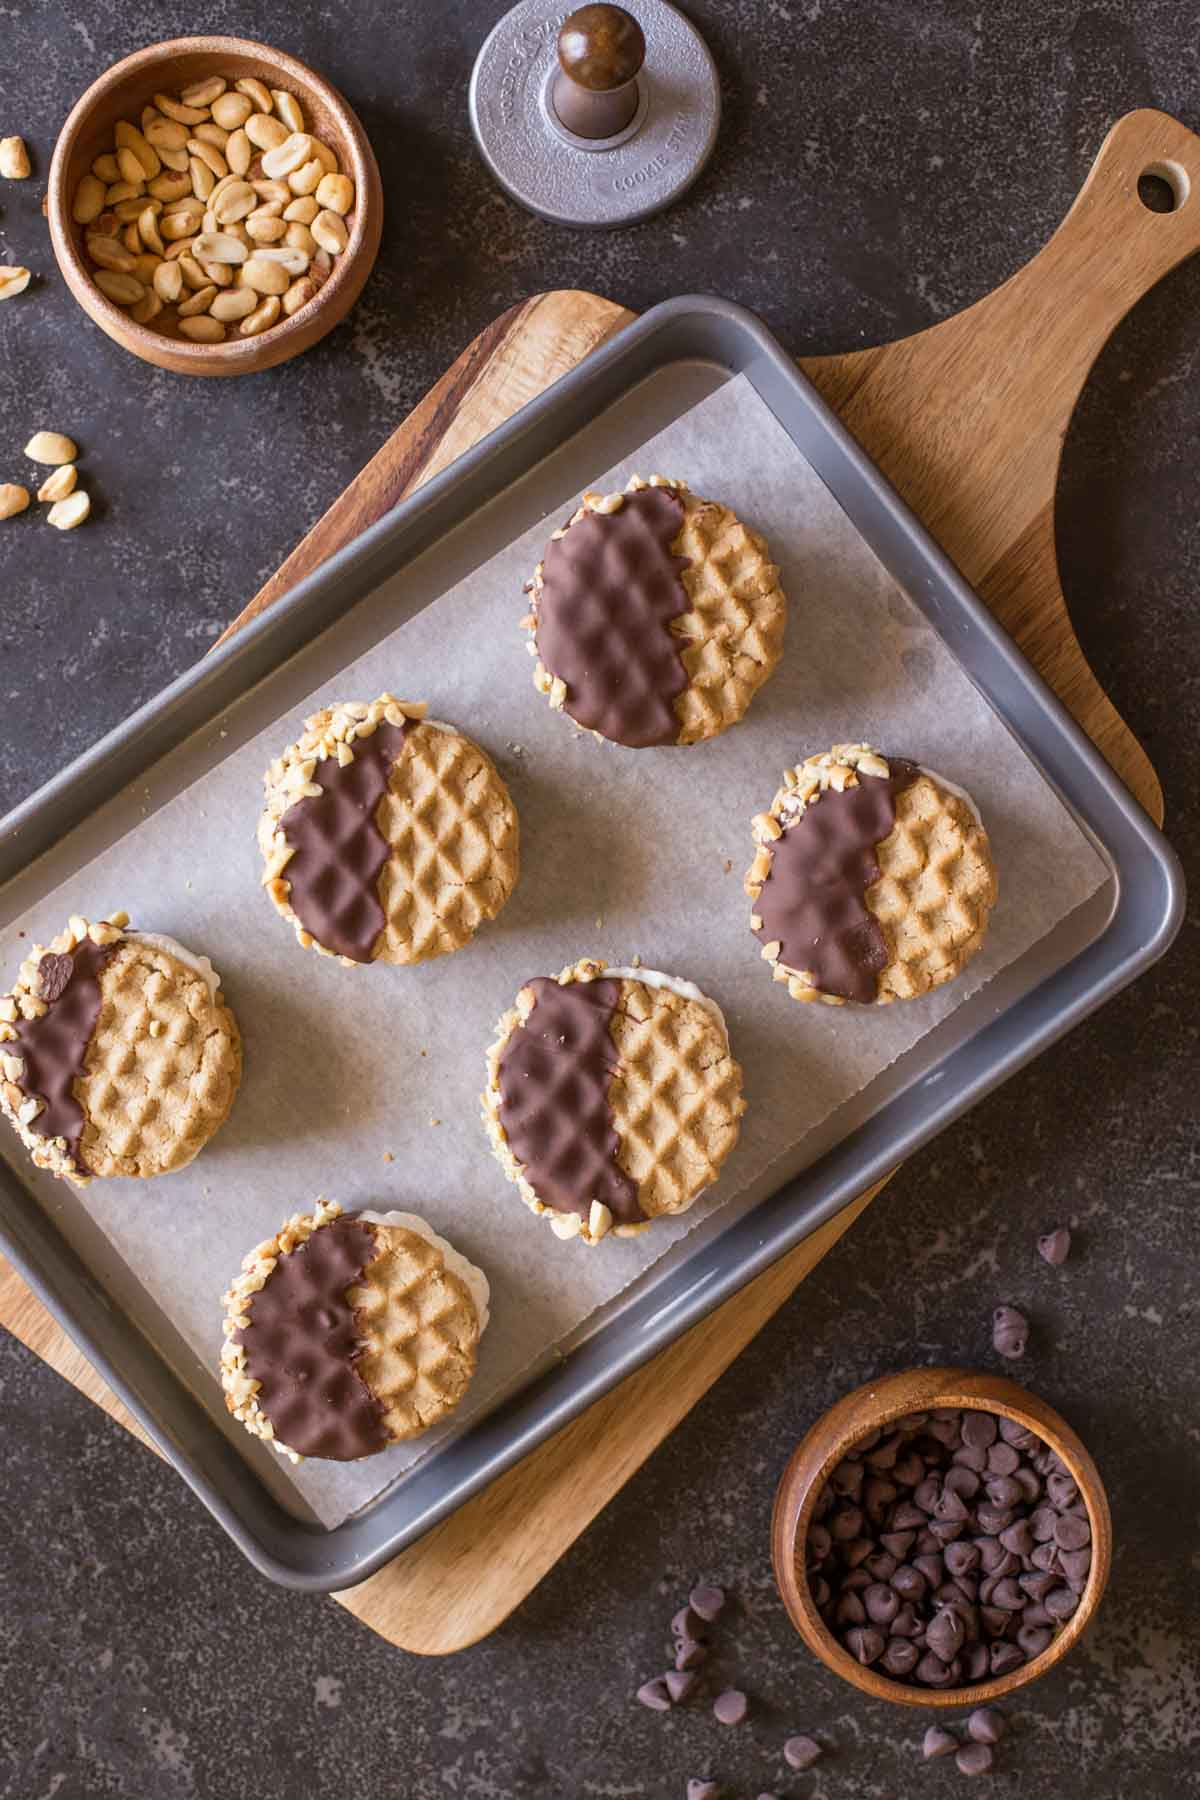 Peanut Butter Cookie Ice Cream Sandwiches on a parchment paper lined baking sheet, with a bowl of peanuts and a bowl of chocolate chips next to it.